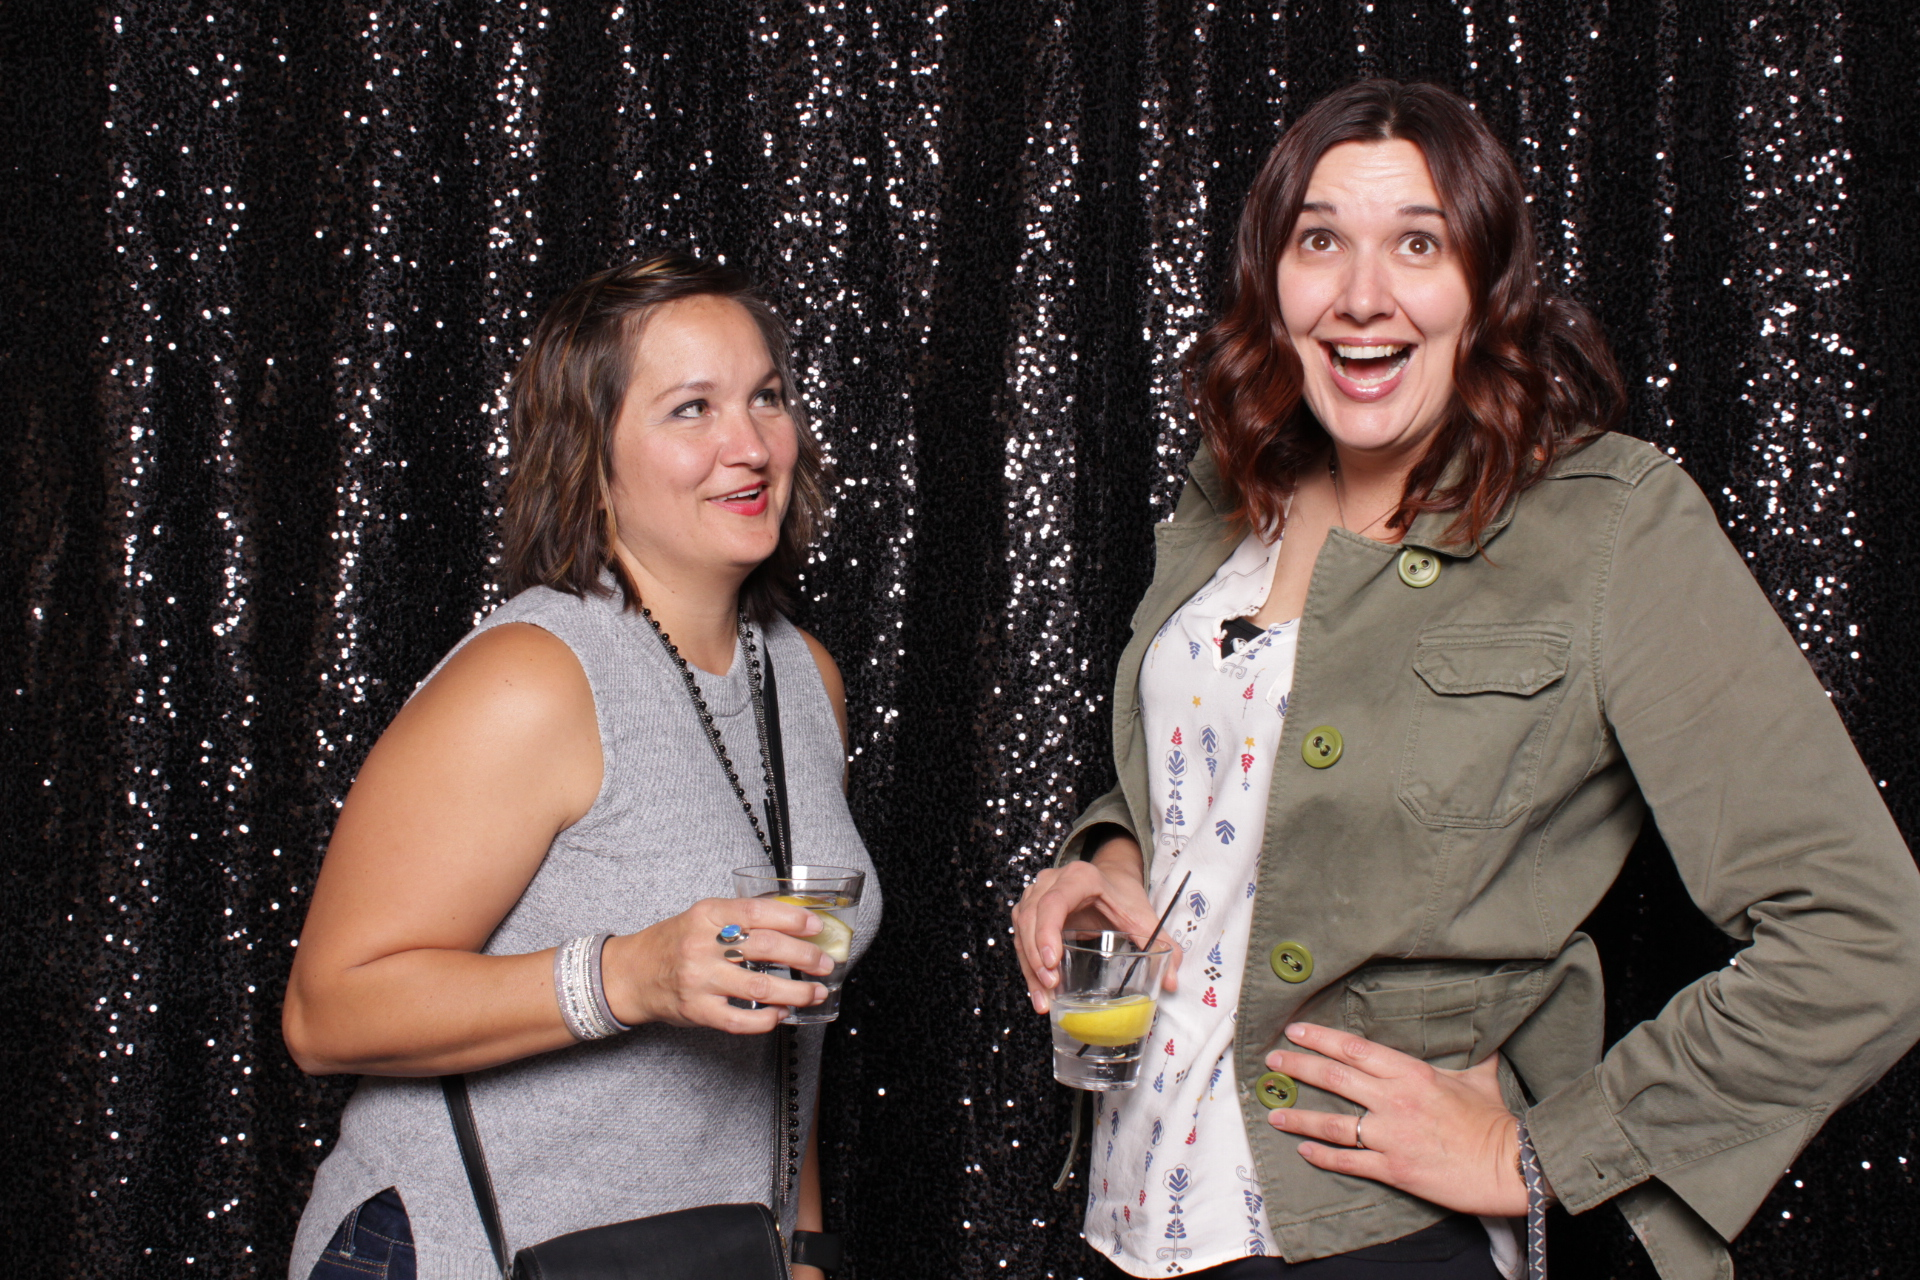 Minneapolis_birthday_party_photo_booth_rentals (6).jpg